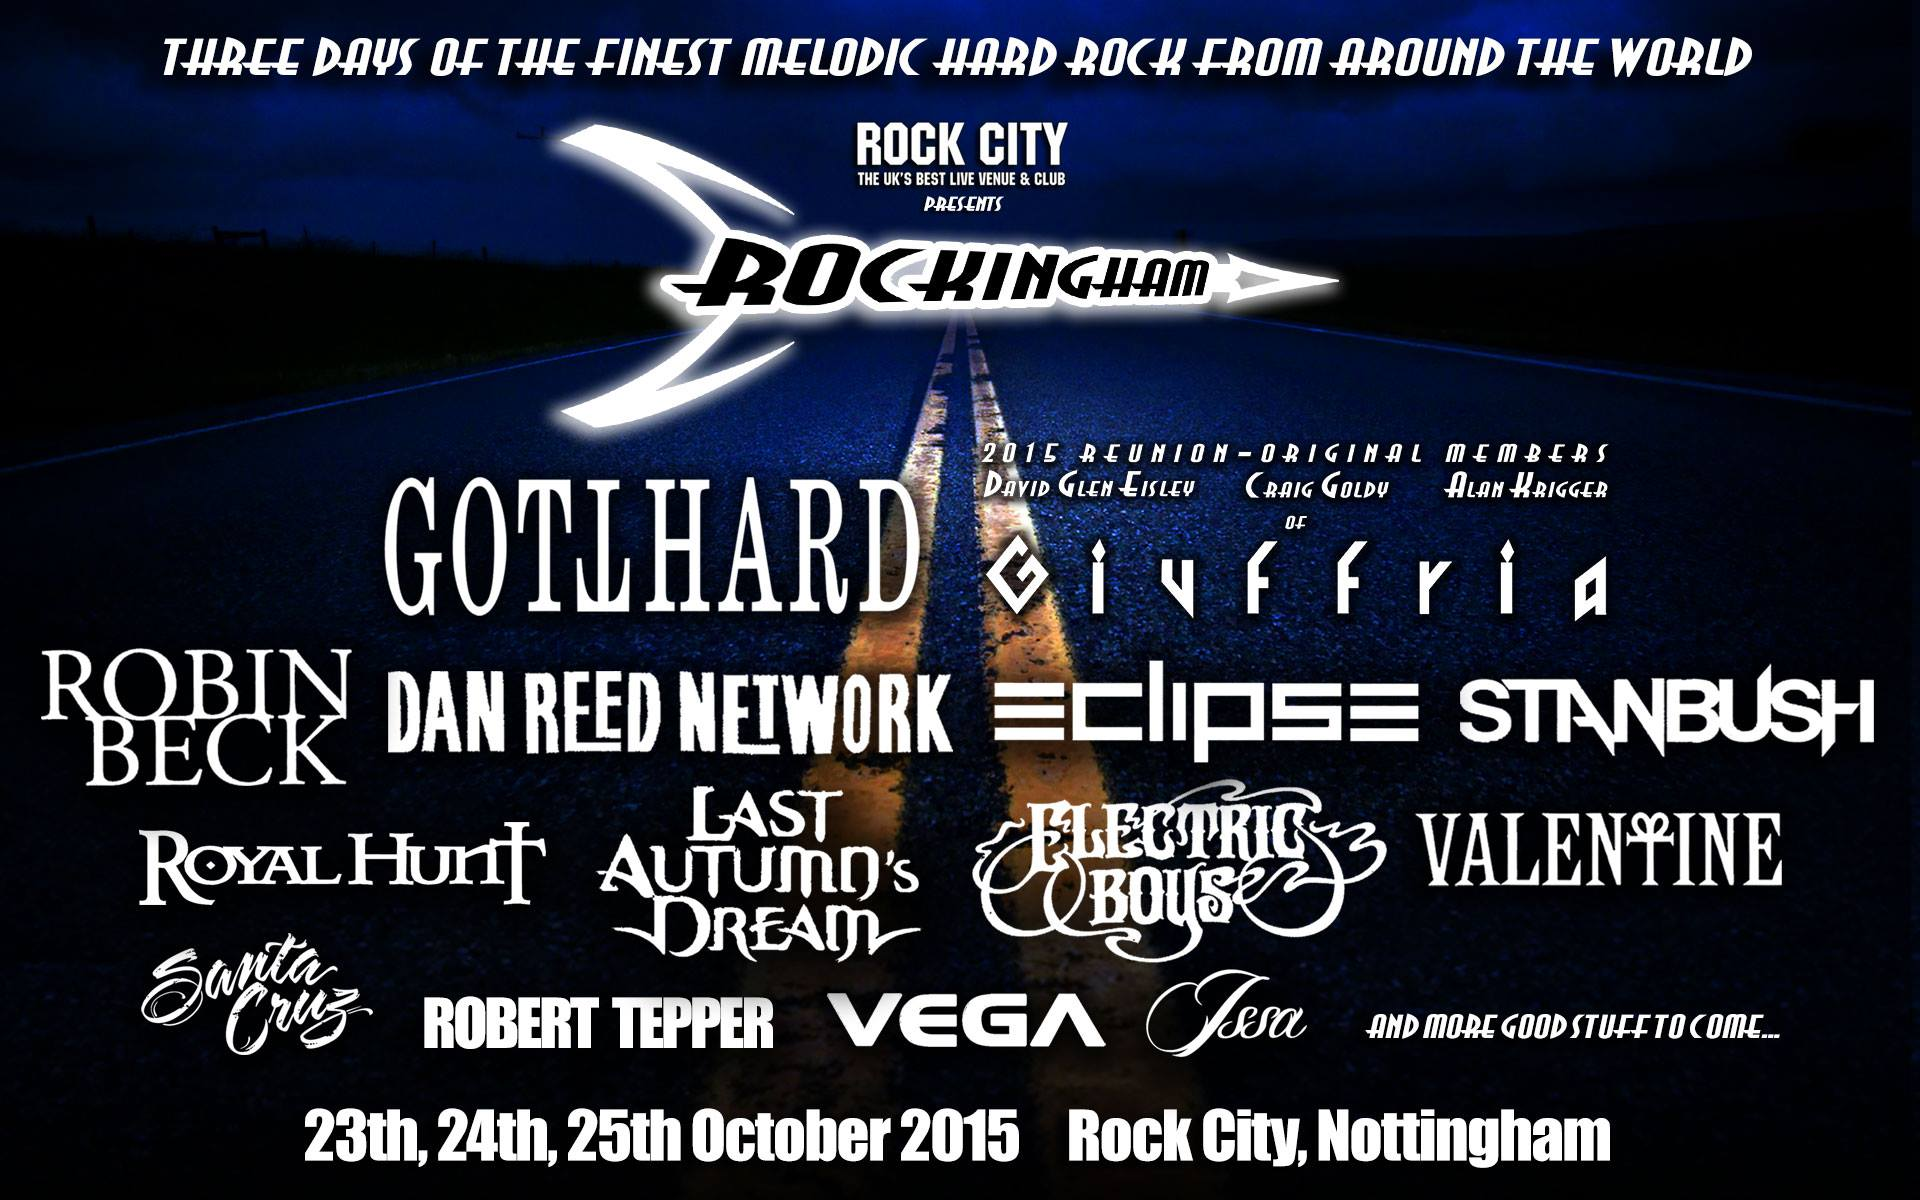 Rockingham Rock City Three days of the finest melodic hard rock from around the world